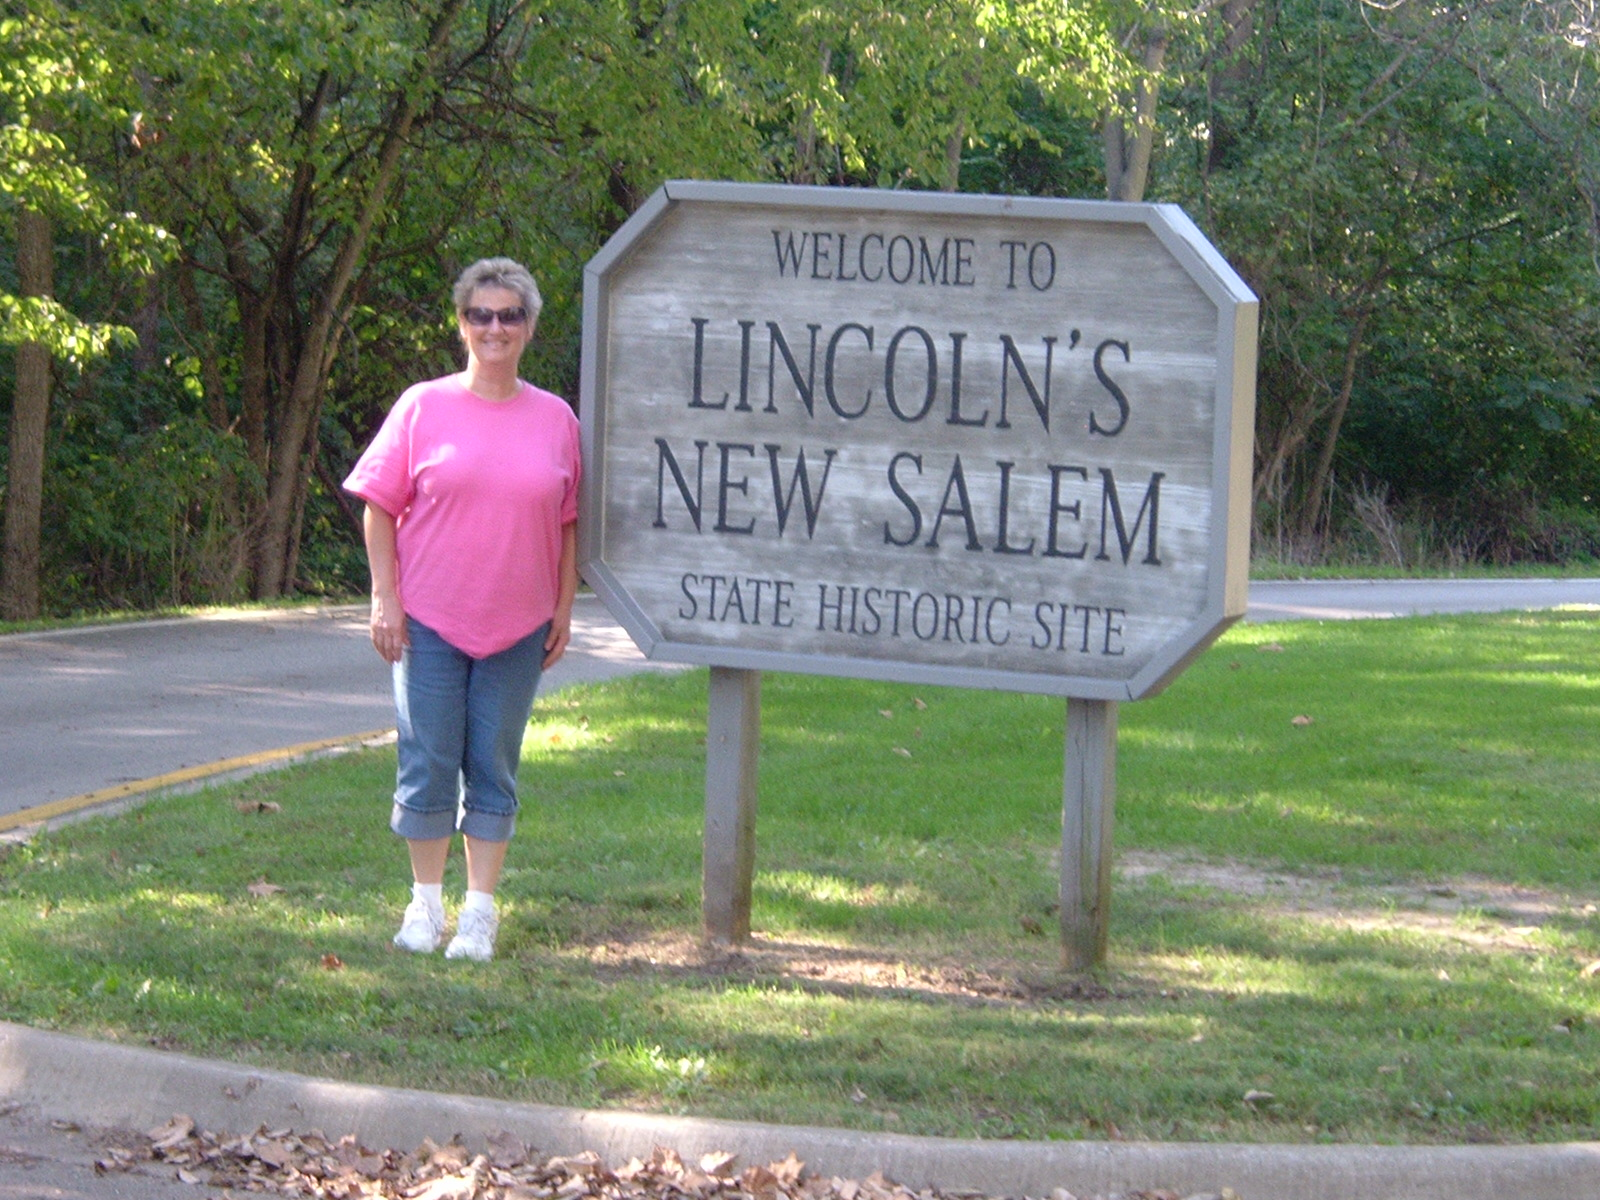 lincolns new salem online dating The rebuilding of new salem forced historians to confront ann rutledge again biographers wary of placing too much emphasis on ann's lasting impact challenged historical novelists who embellished lincoln's tragic romance.